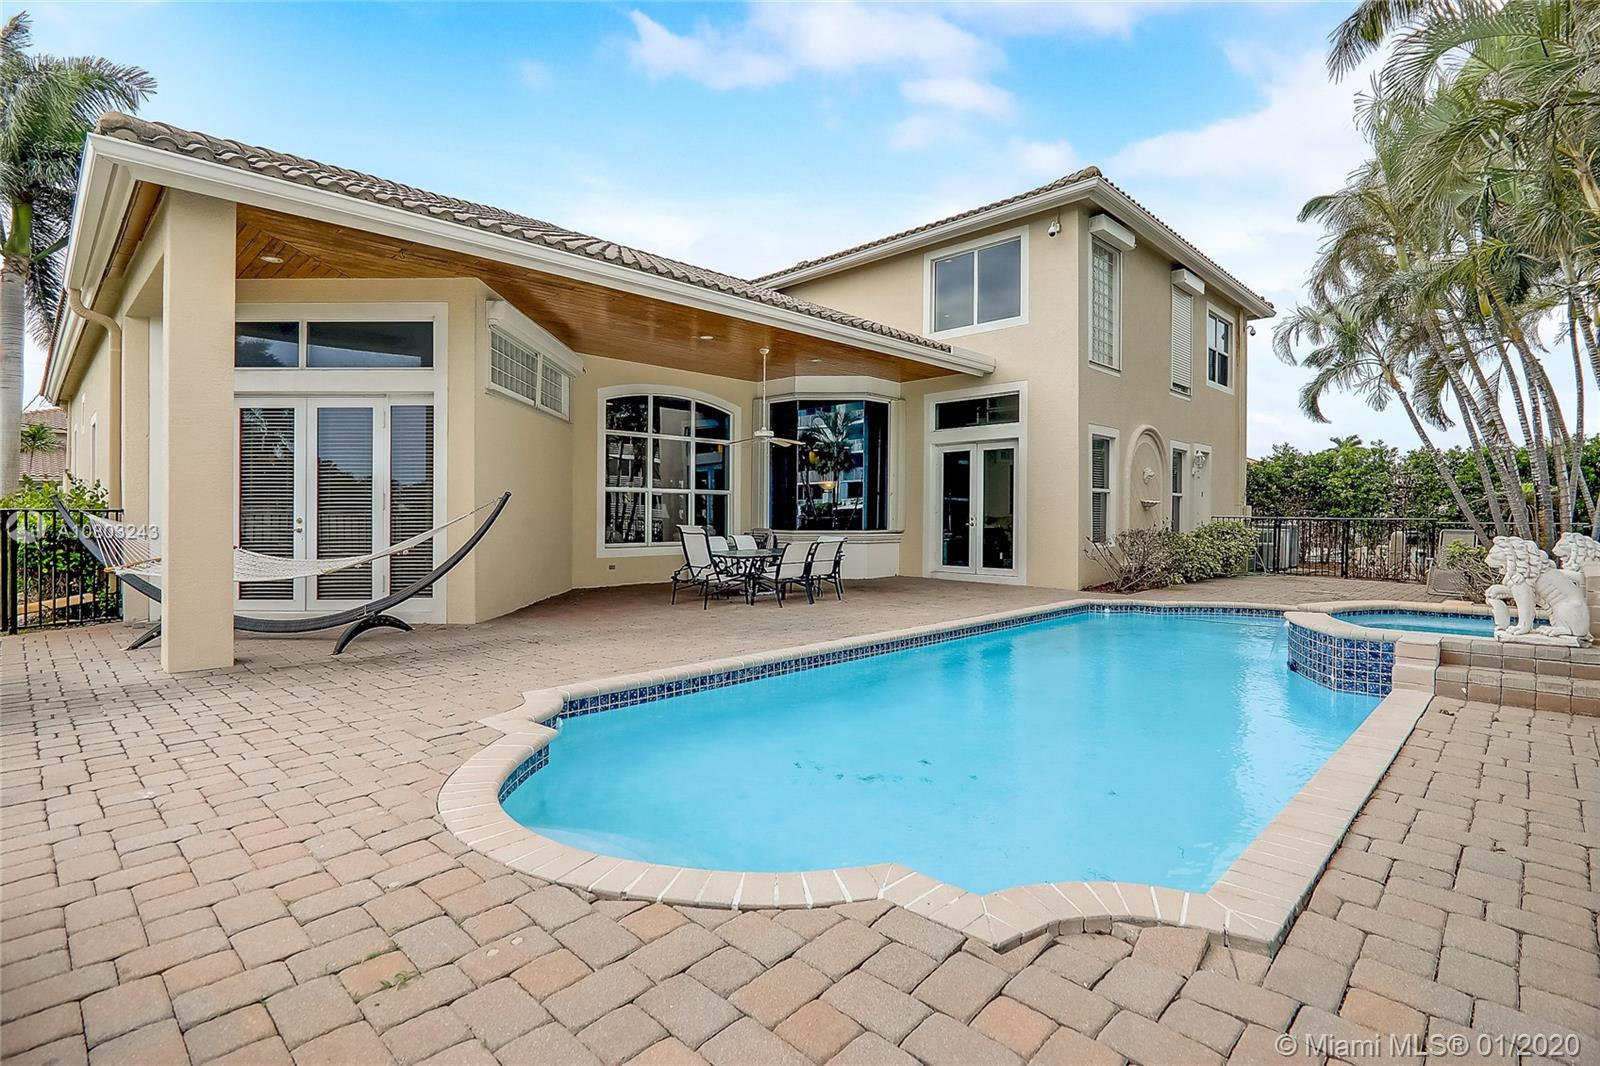 Wonderful waterfront residence in Coral Ridge, located just a couple of houses away from the point with 85 feet of water frontage. Property is 6 full bedrooms, currently being updated by the City. High ceilings, marble floor throughout, spacious floor plan, plenty of natural light. Lovely backyard for entertaining. 3 car garage. Just a couple of blocks from Bay View Park.